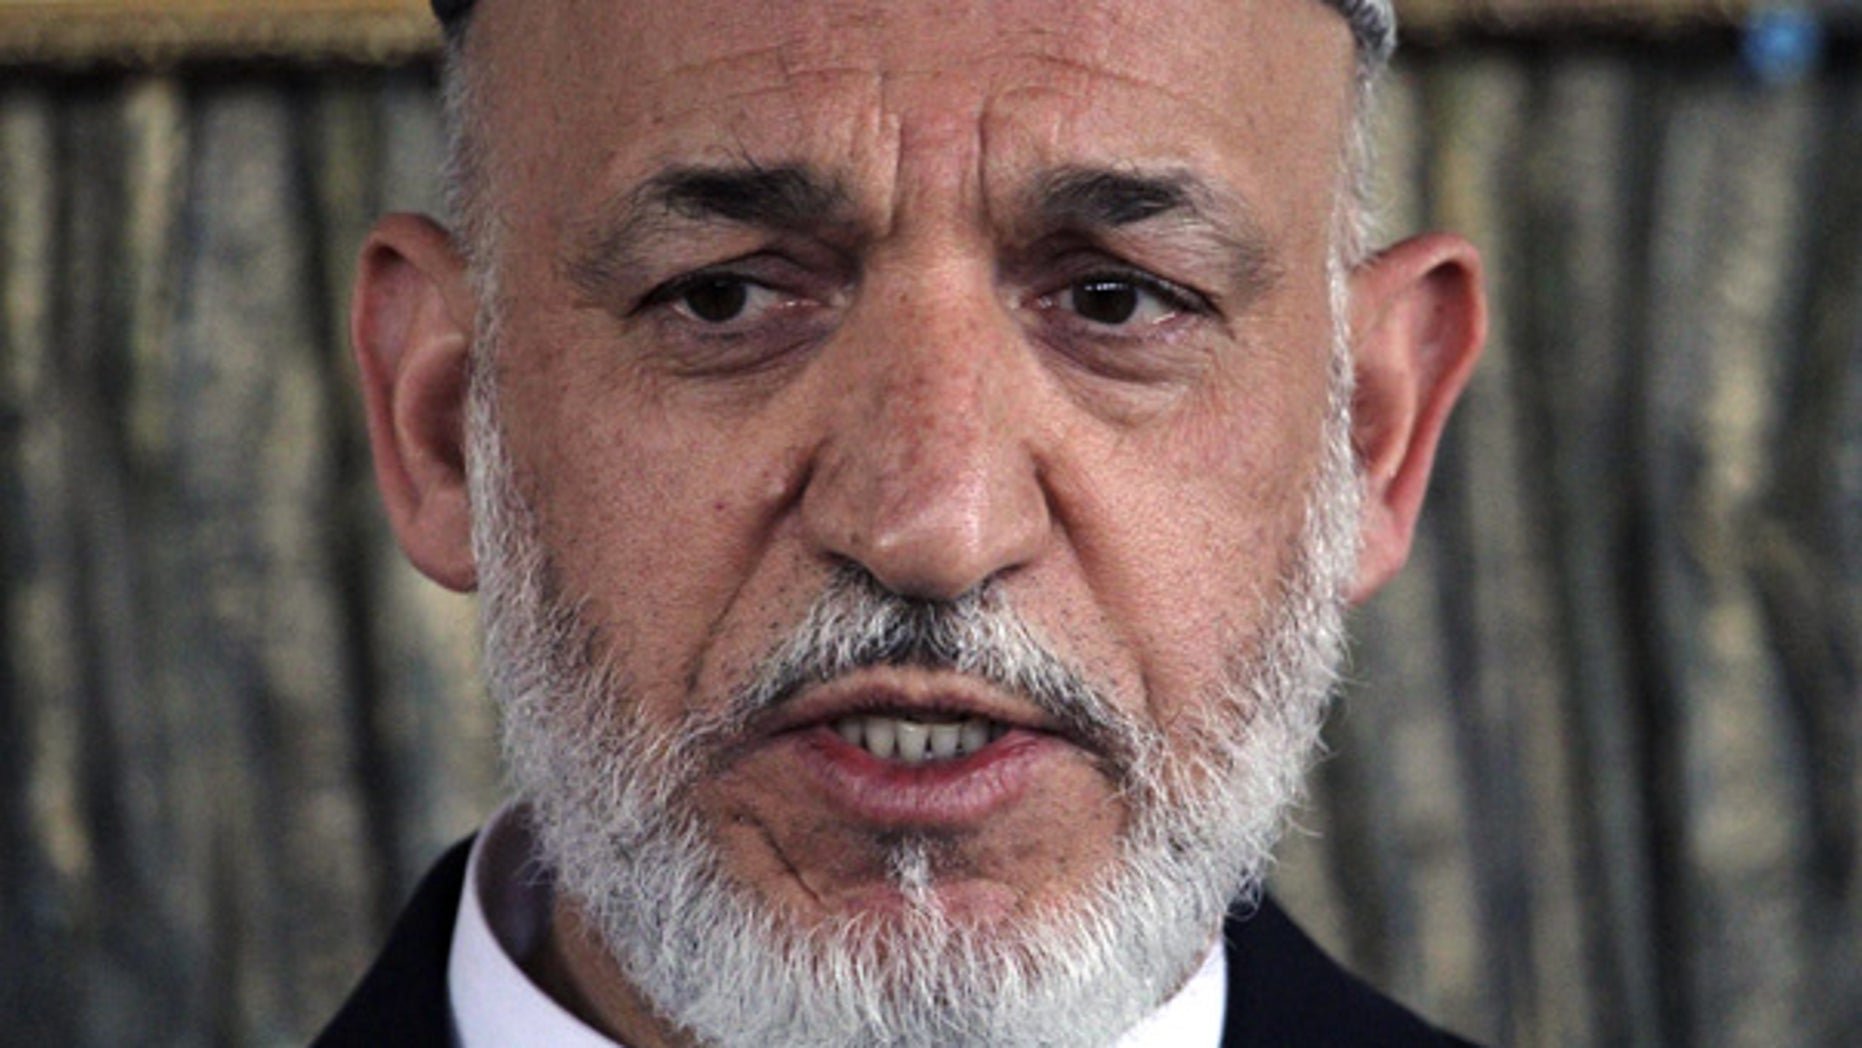 Oct. 9: Afghan President Hamid Karzai speaks in Kandahar province.